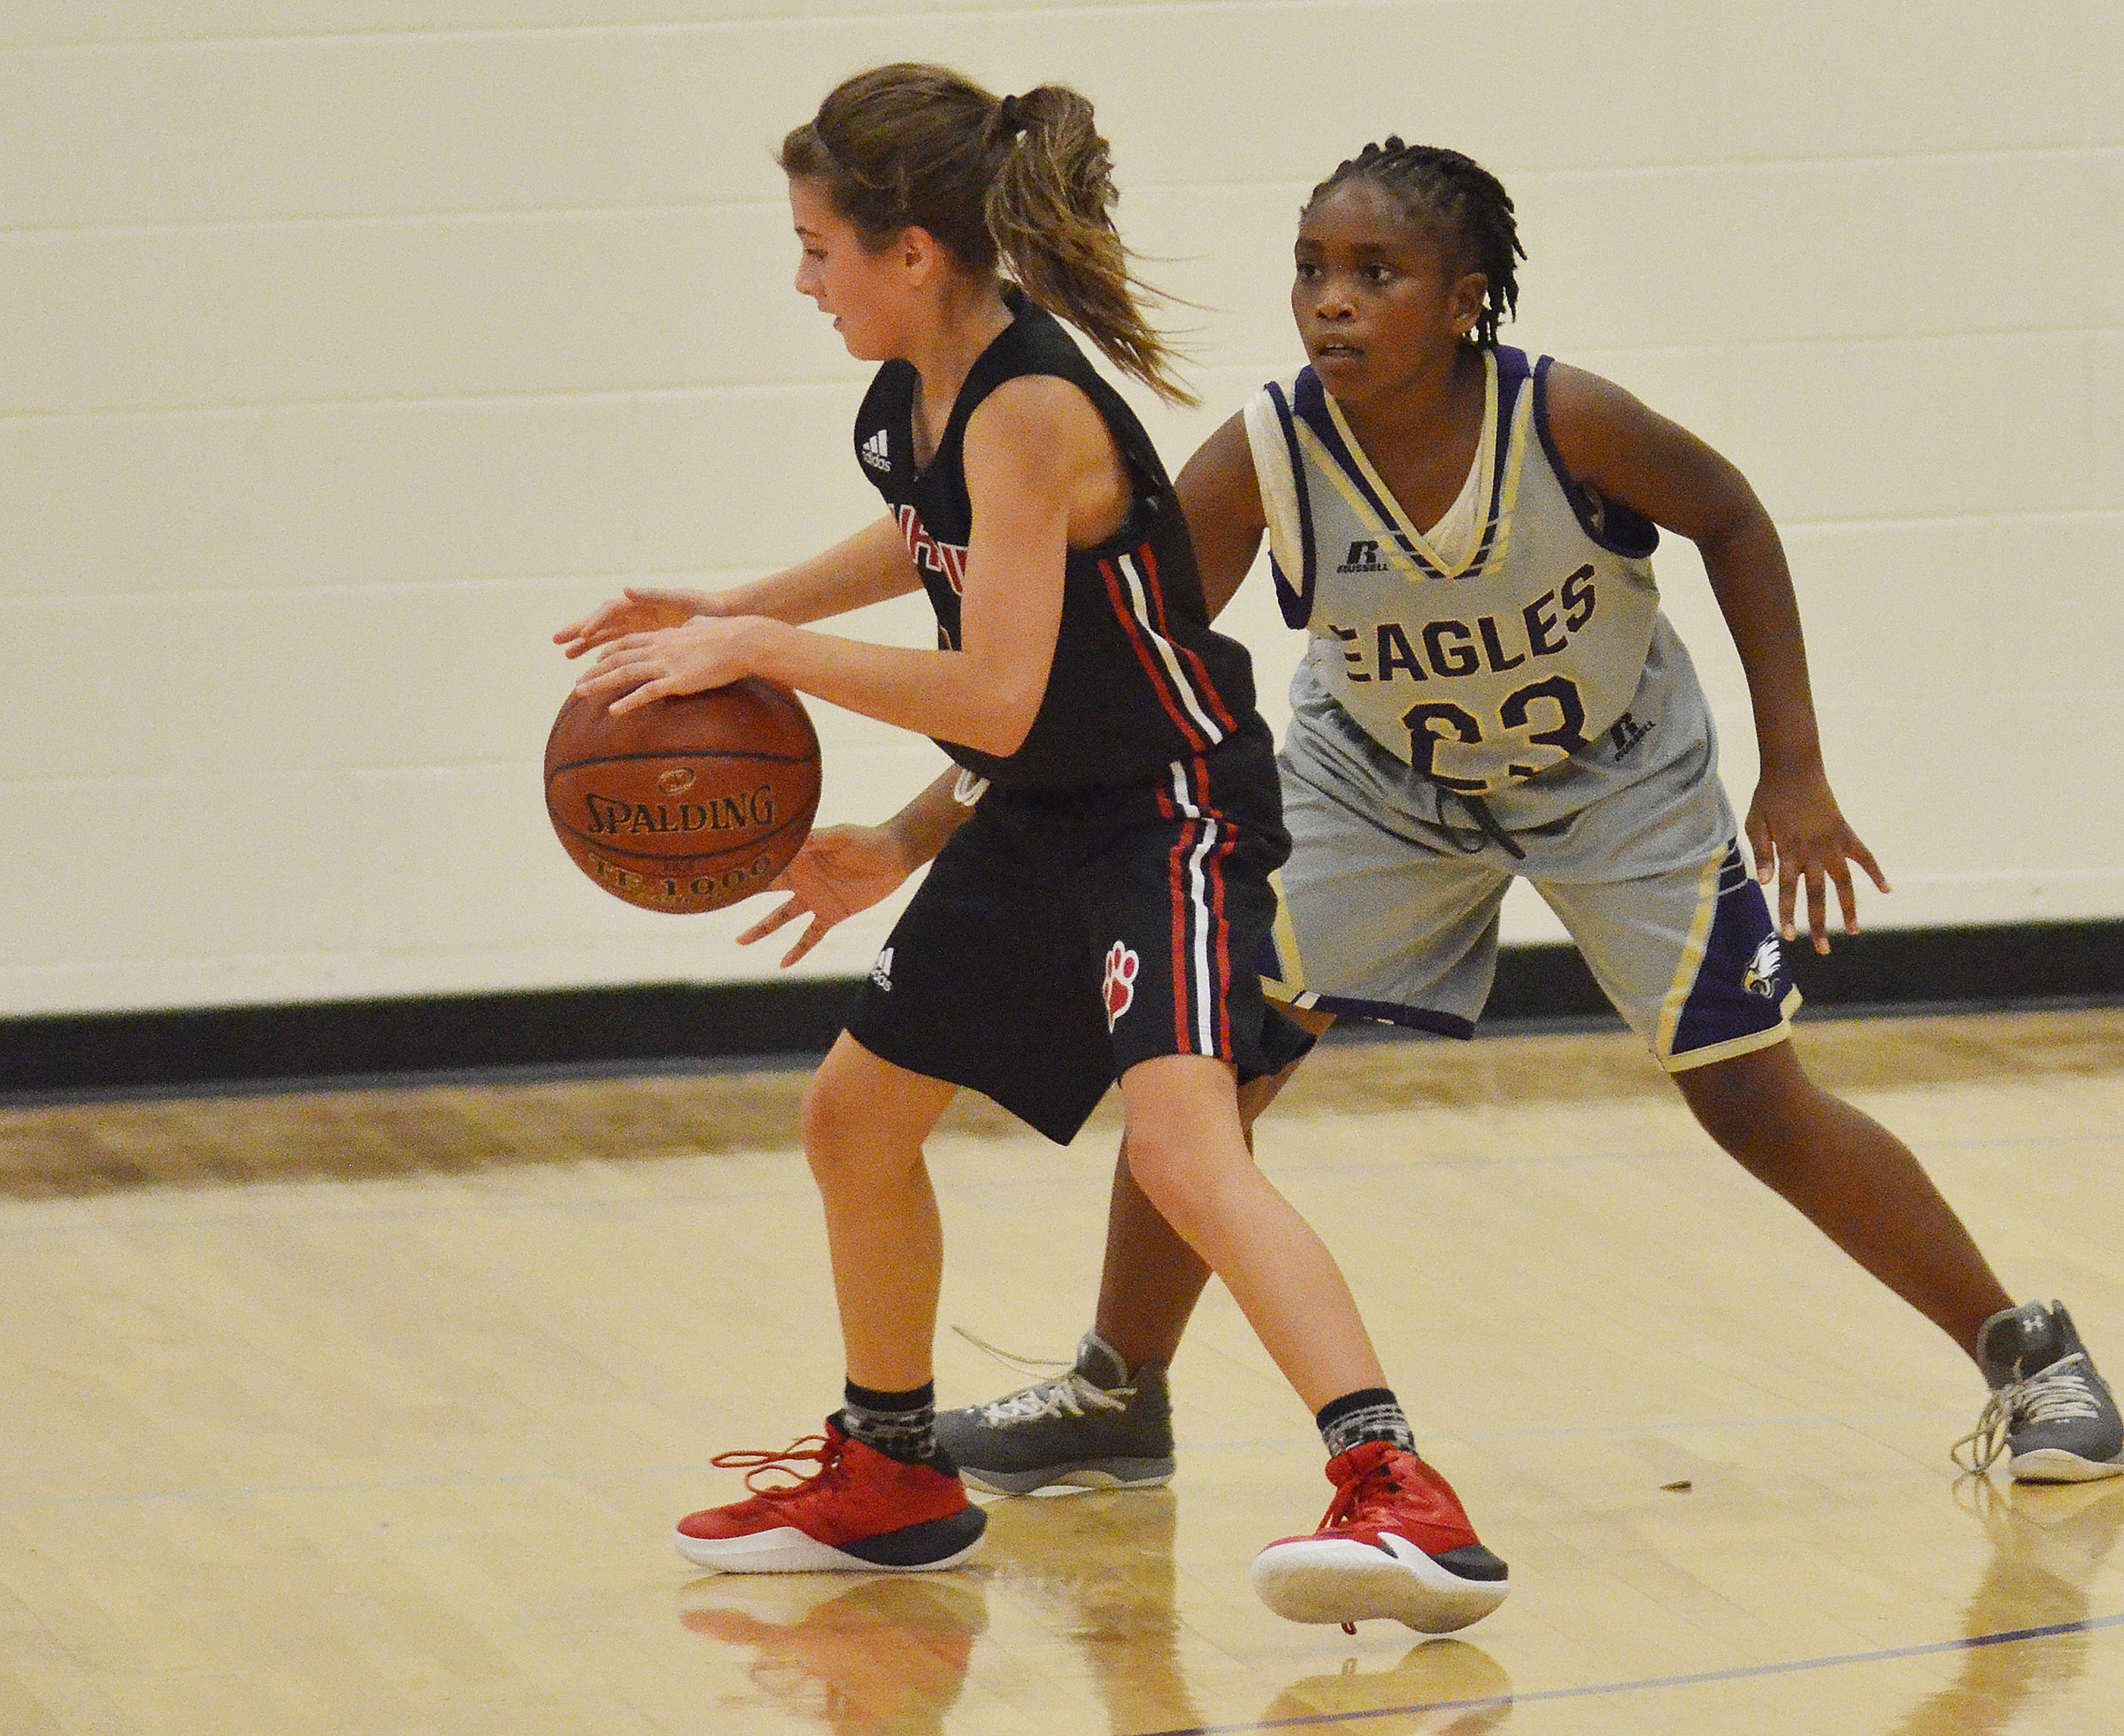 Campbellsville Elementary School fifth-grader Ta'Zaria Owens plays defense.